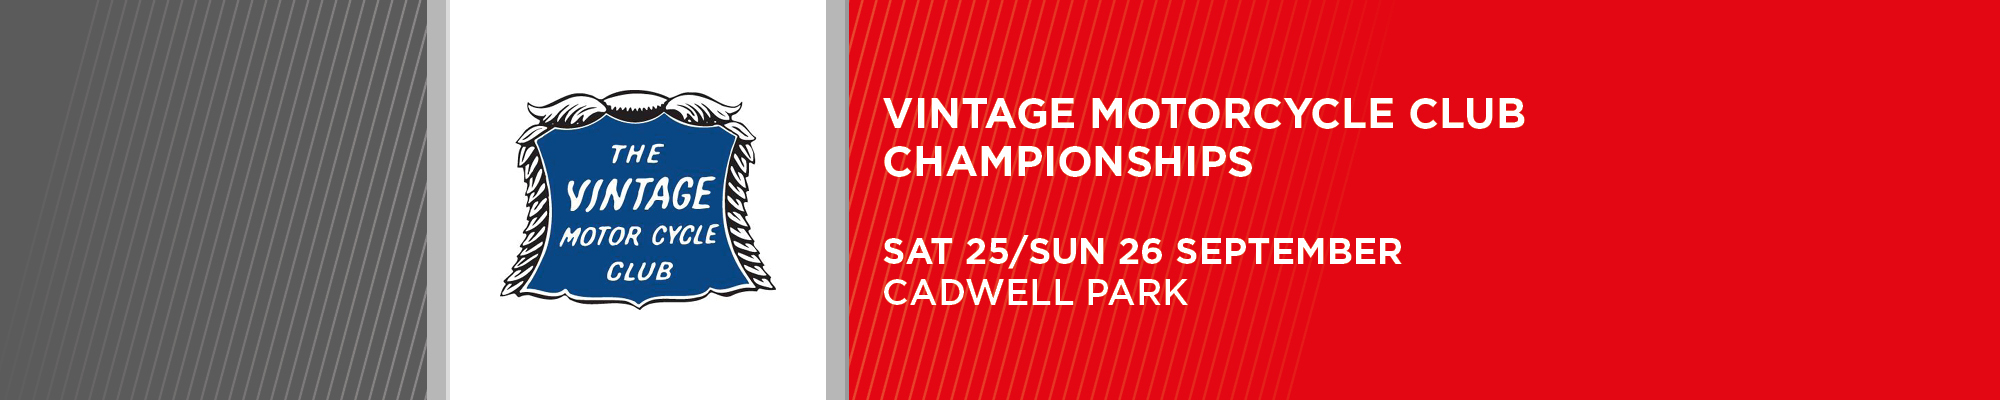 Vintage Motorcycle Club Championships